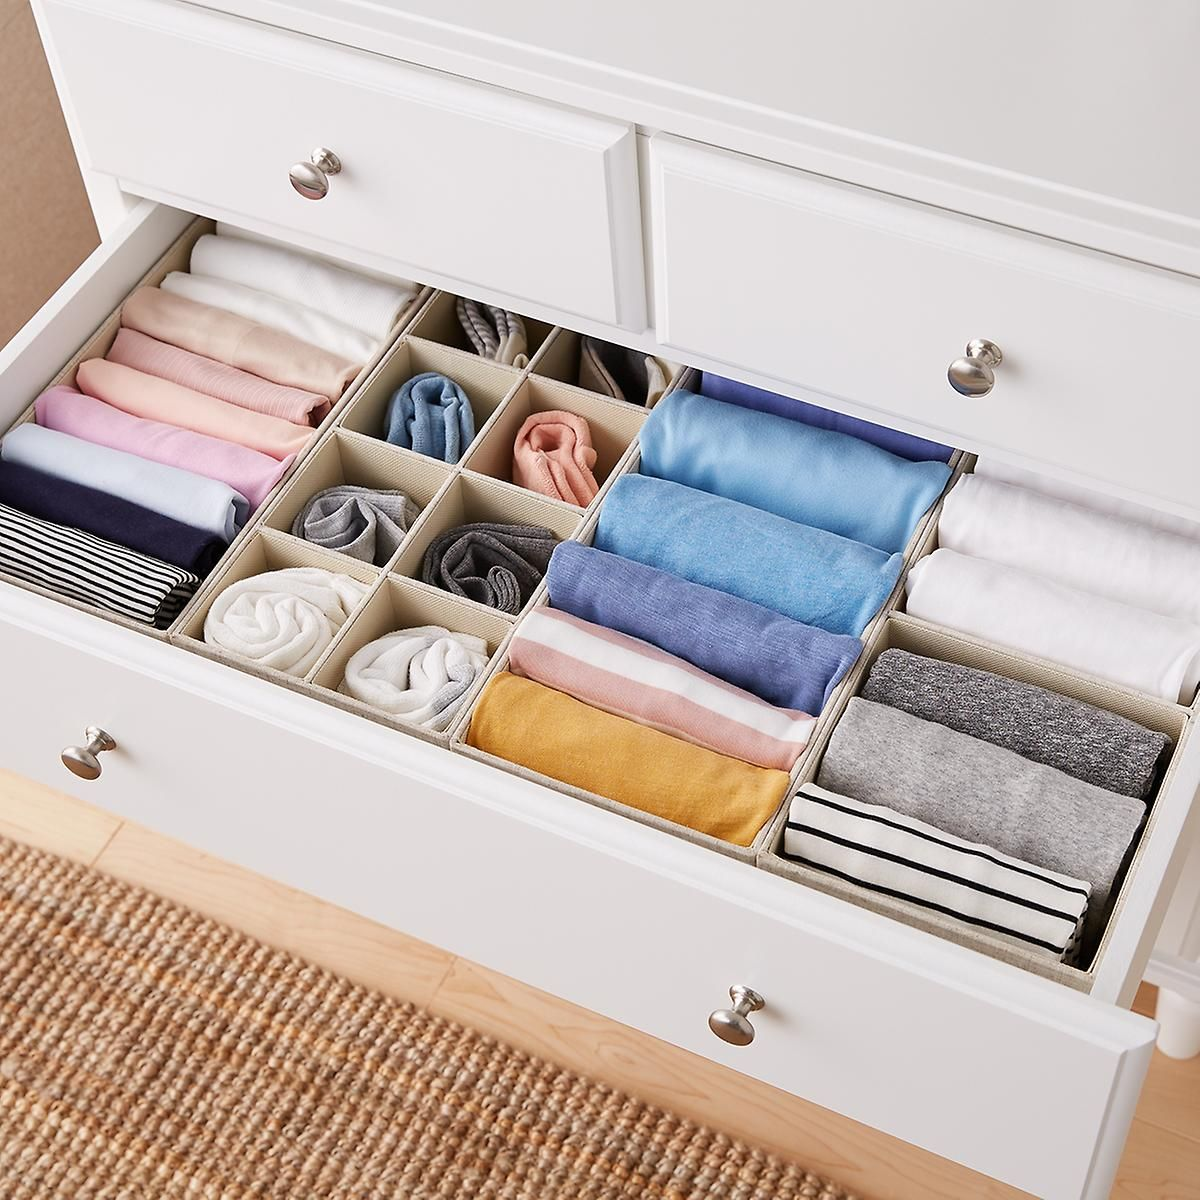 Linen Cambridge Drawer Organizers Dresser Drawer Organization Clothes Closet Organization Dresser Organization